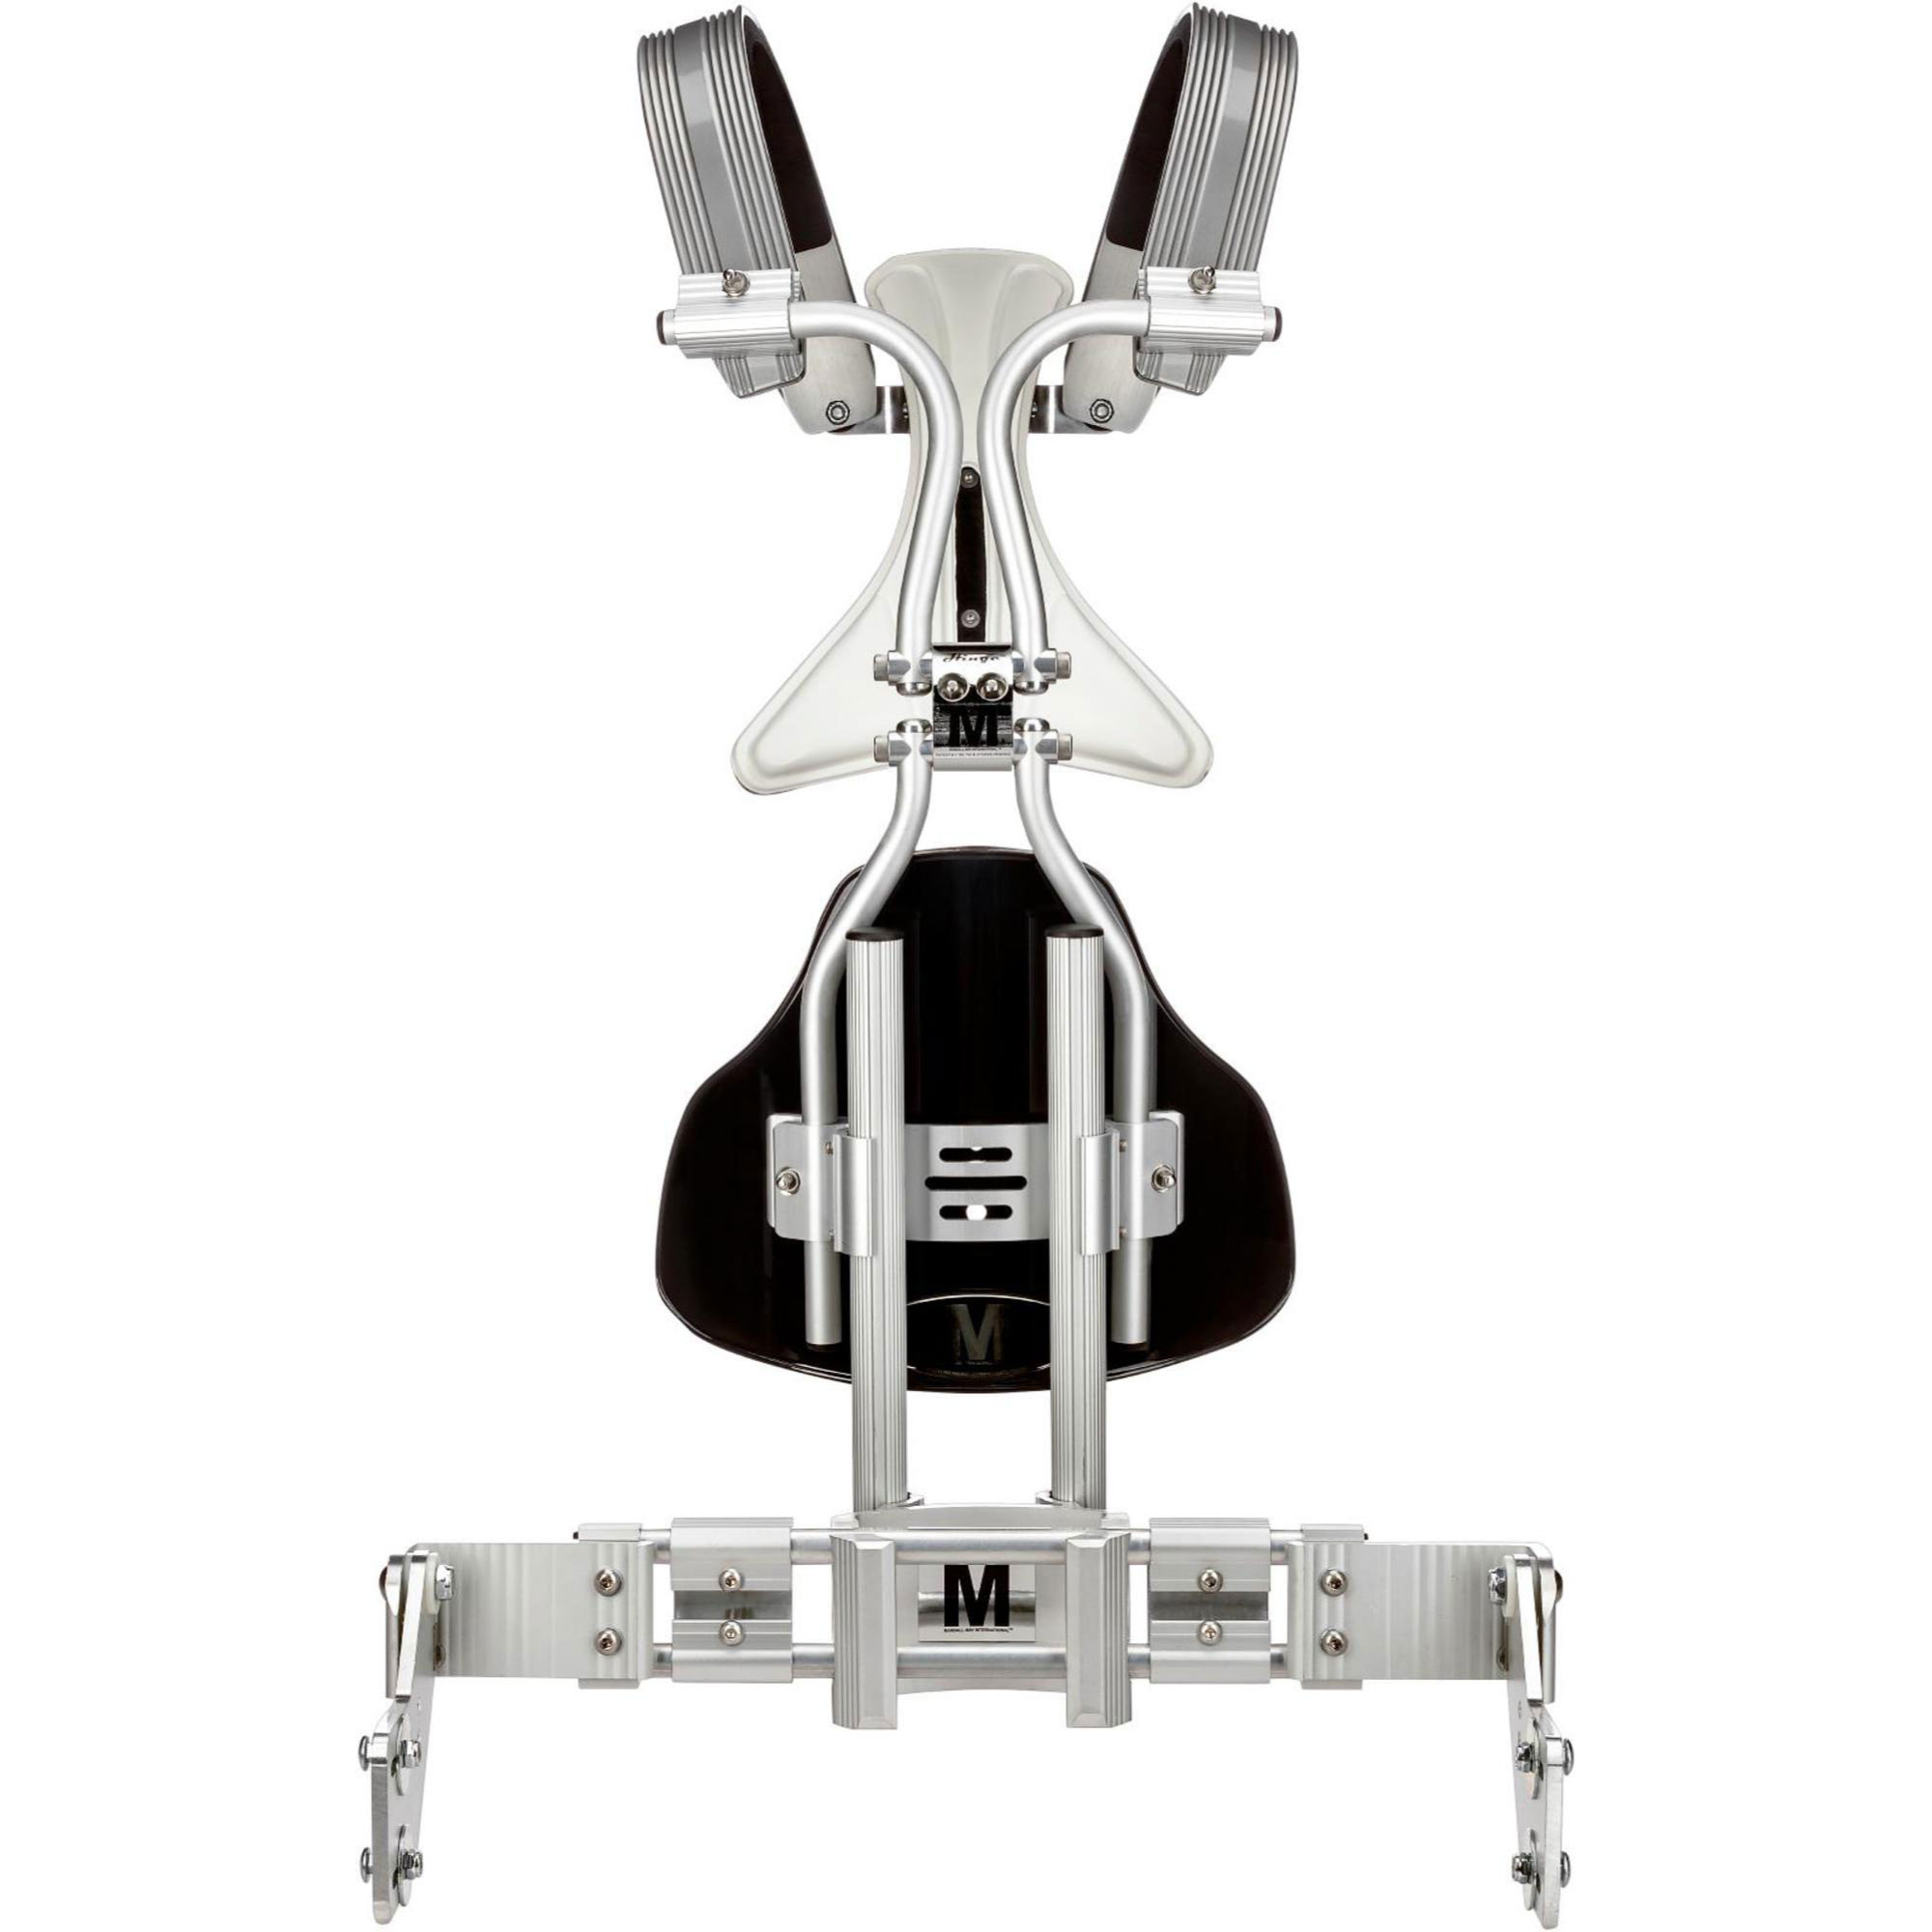 Mapex/Randall May Petite BiPosto Marching Tenor Carrier with Mounting Hardware & Carry-On Bag